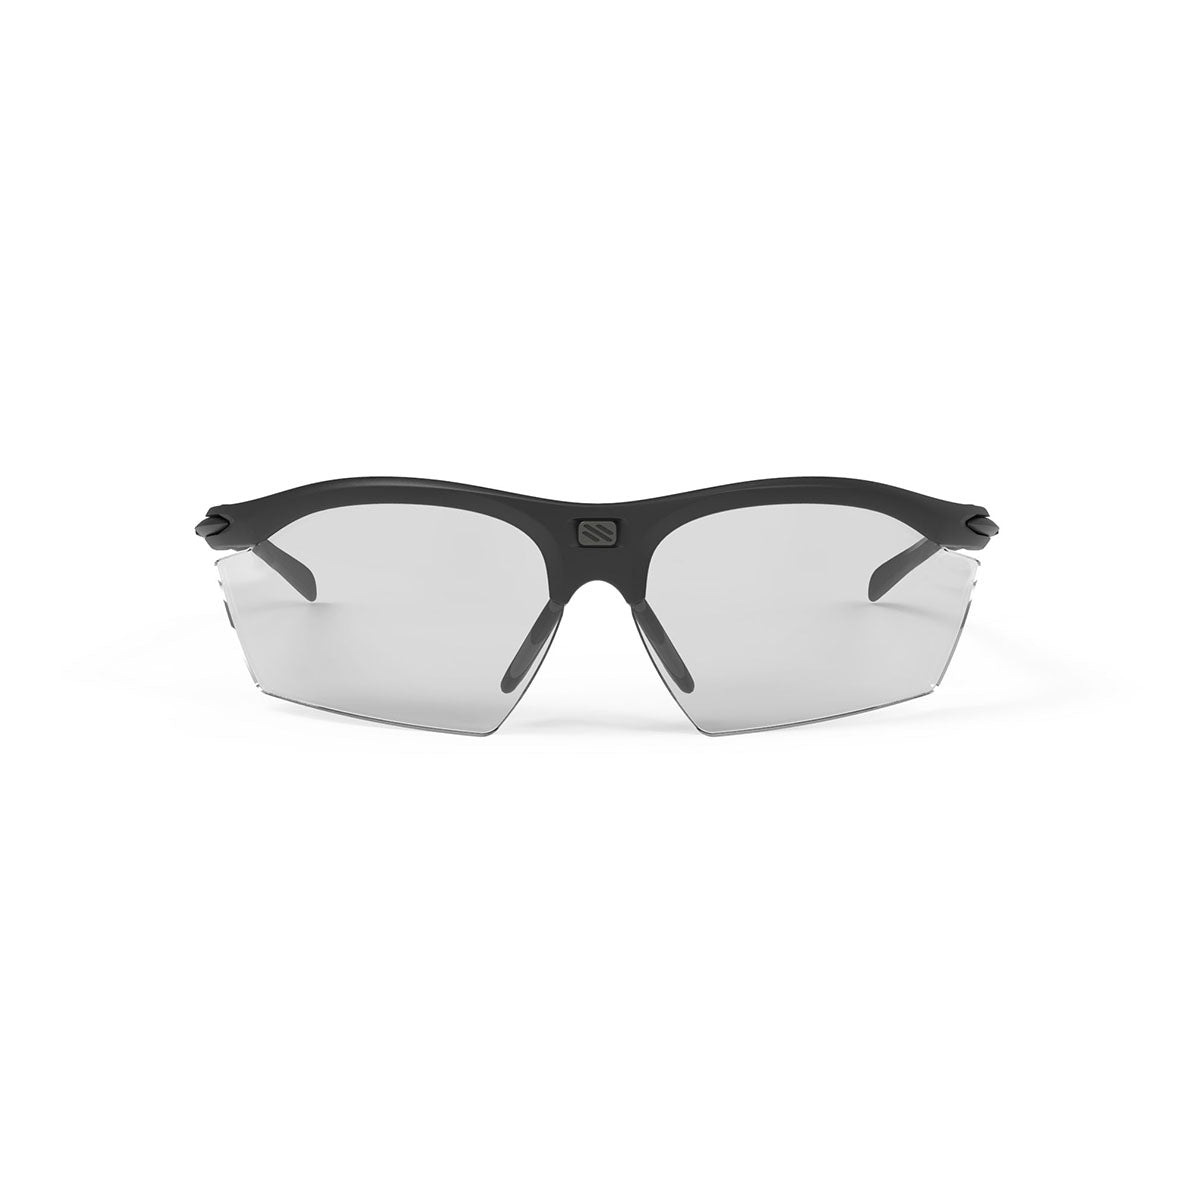 Rudy Project - Rydon - frame color: Stealth Matte Black - lens color: ImpactX-2 Photochromic Clear to Black - photo angle: Front View Variant Hover Image